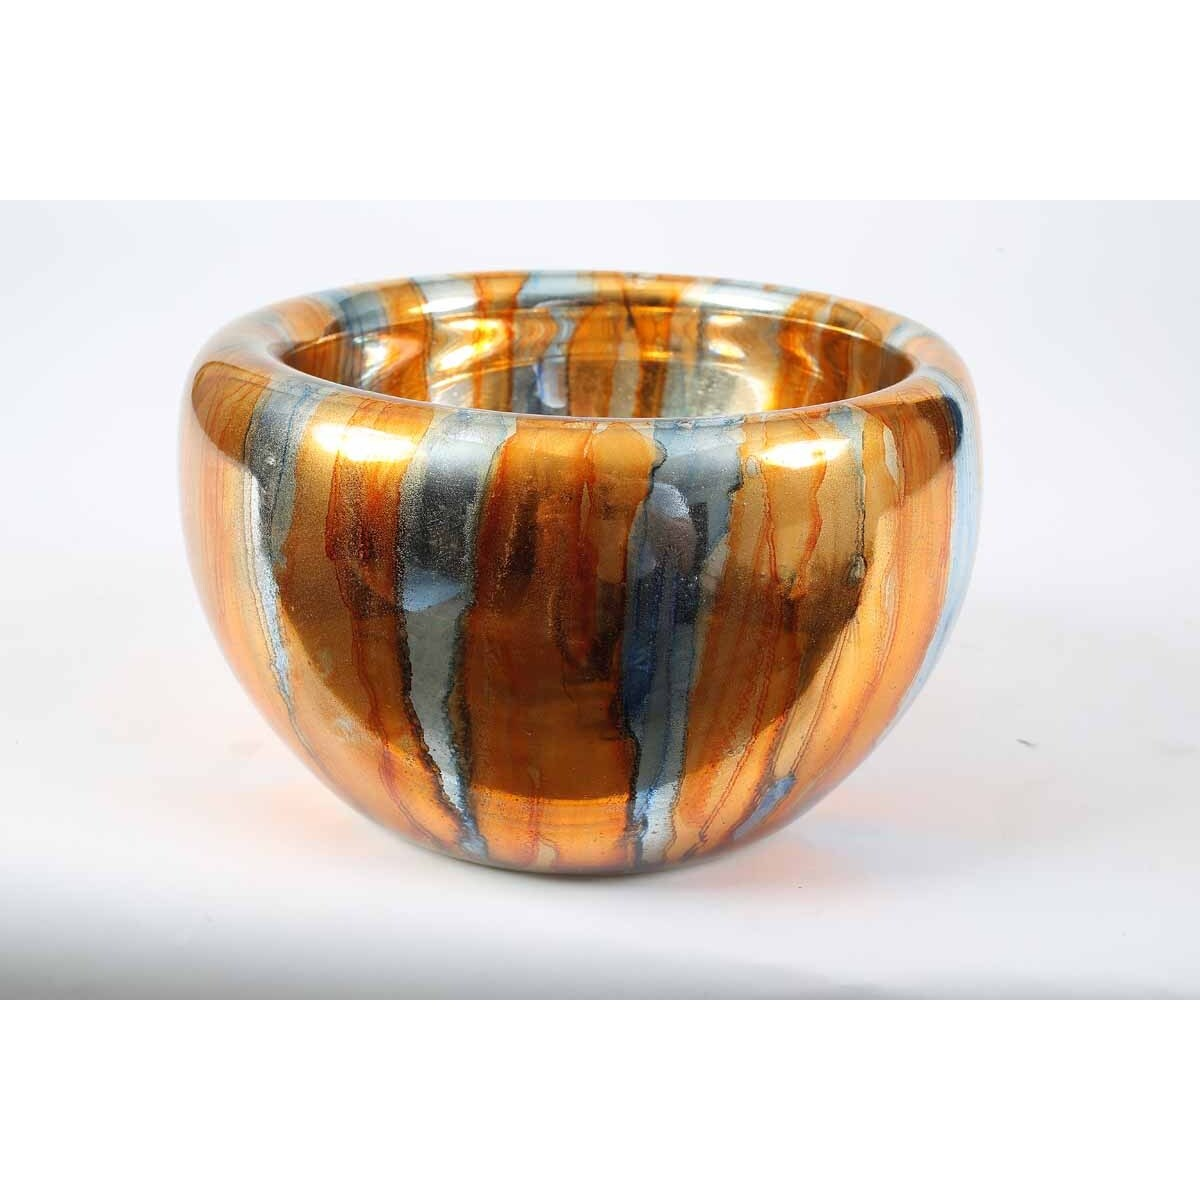 Double Sided Bowl in Glowing Umber Finish